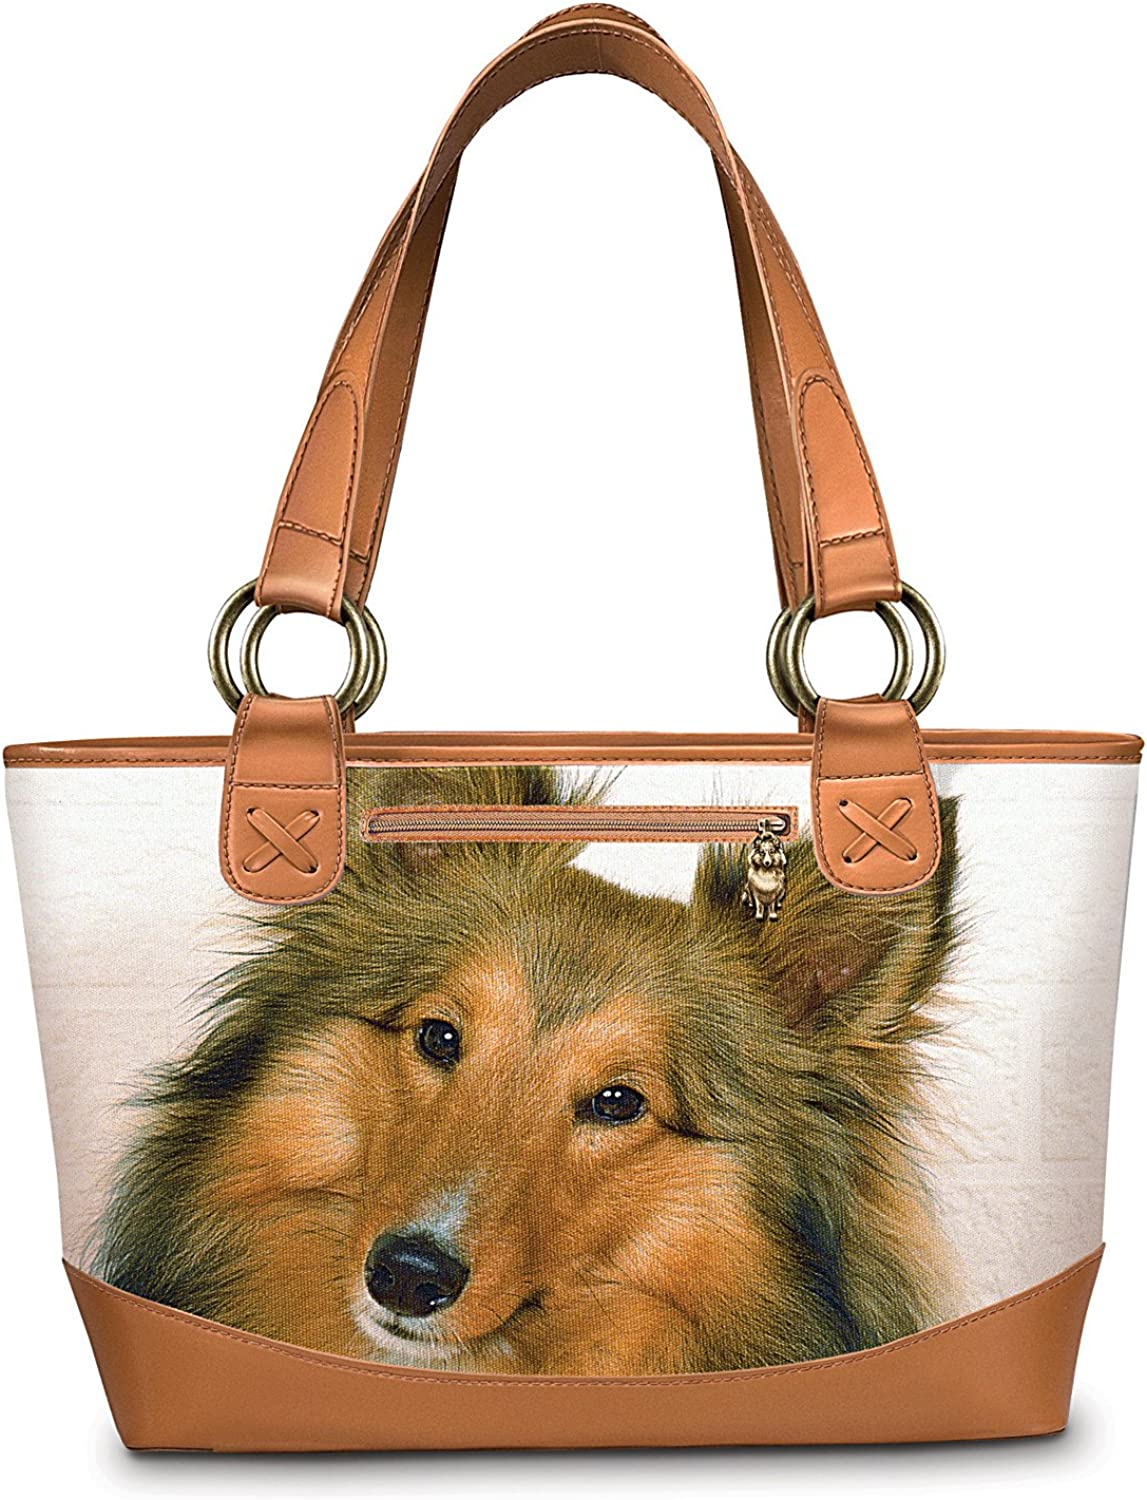 Womens Leather Head Dachshund Dogs Art Handbag Satchel Tote Bag Tote Purse